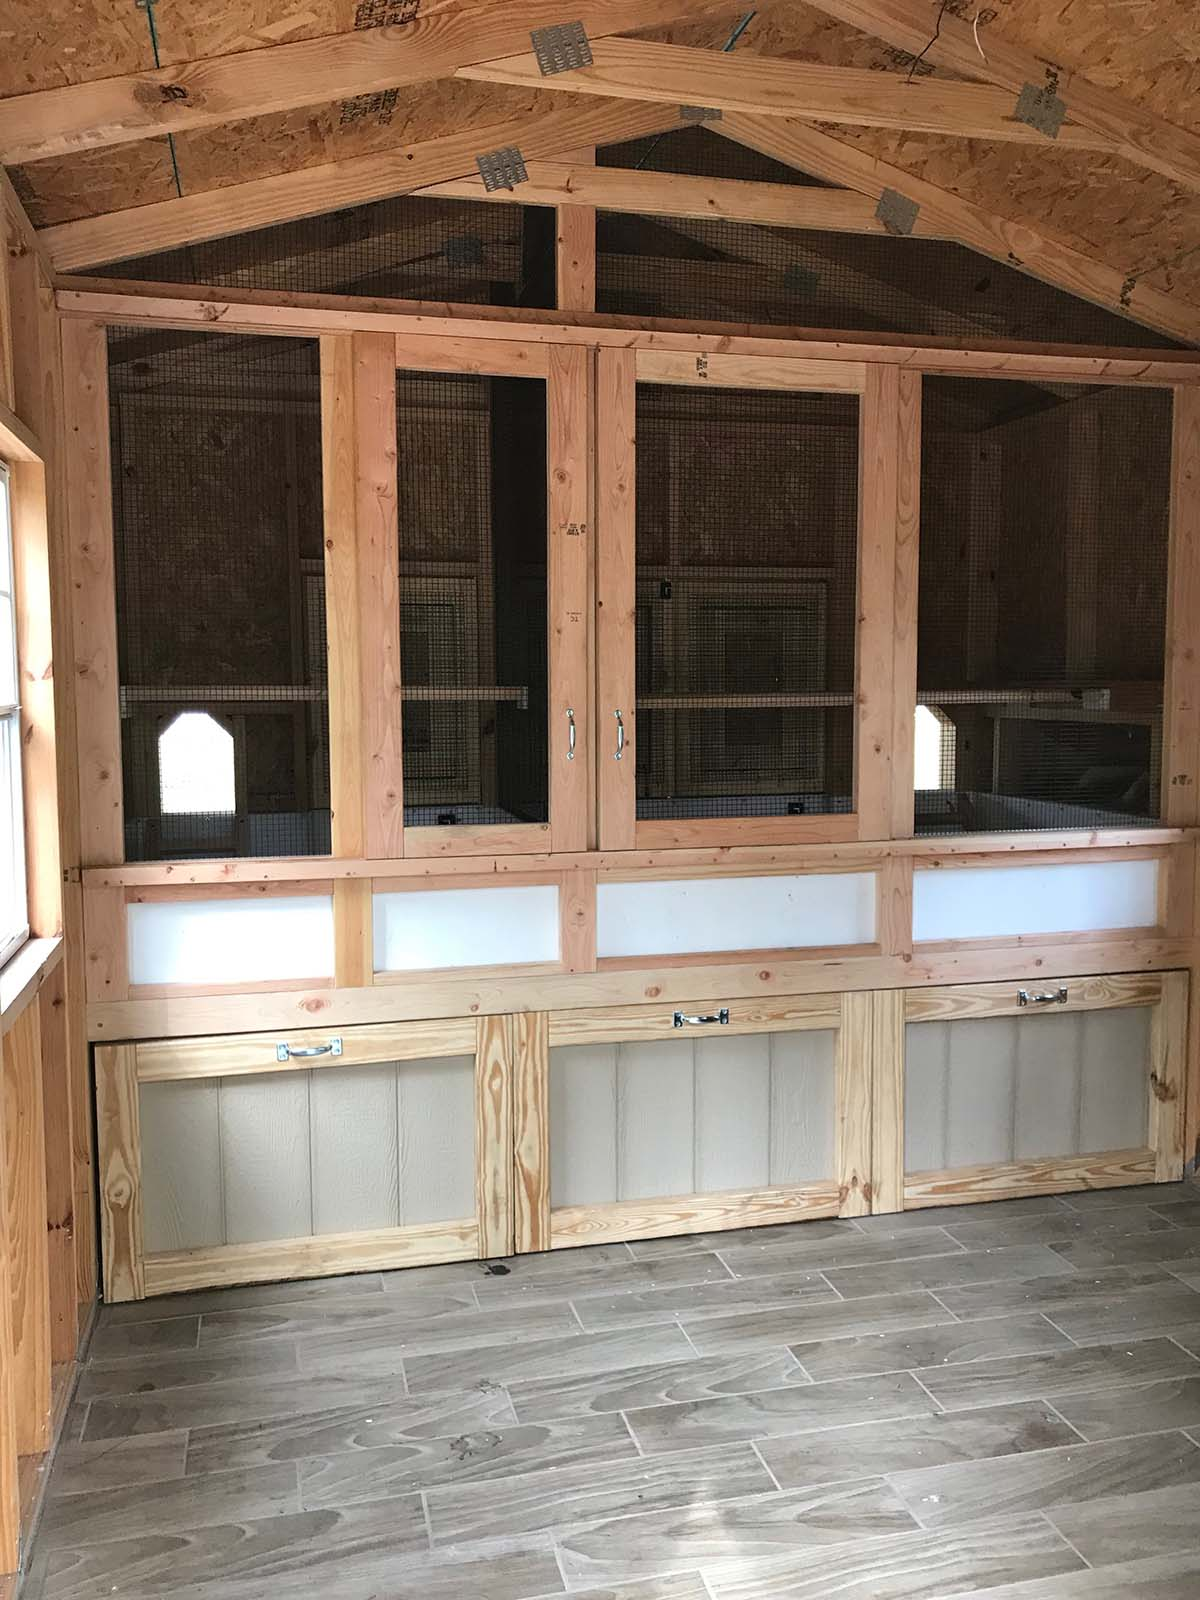 Shed converted into henhouse and storage in Orlando, Florida